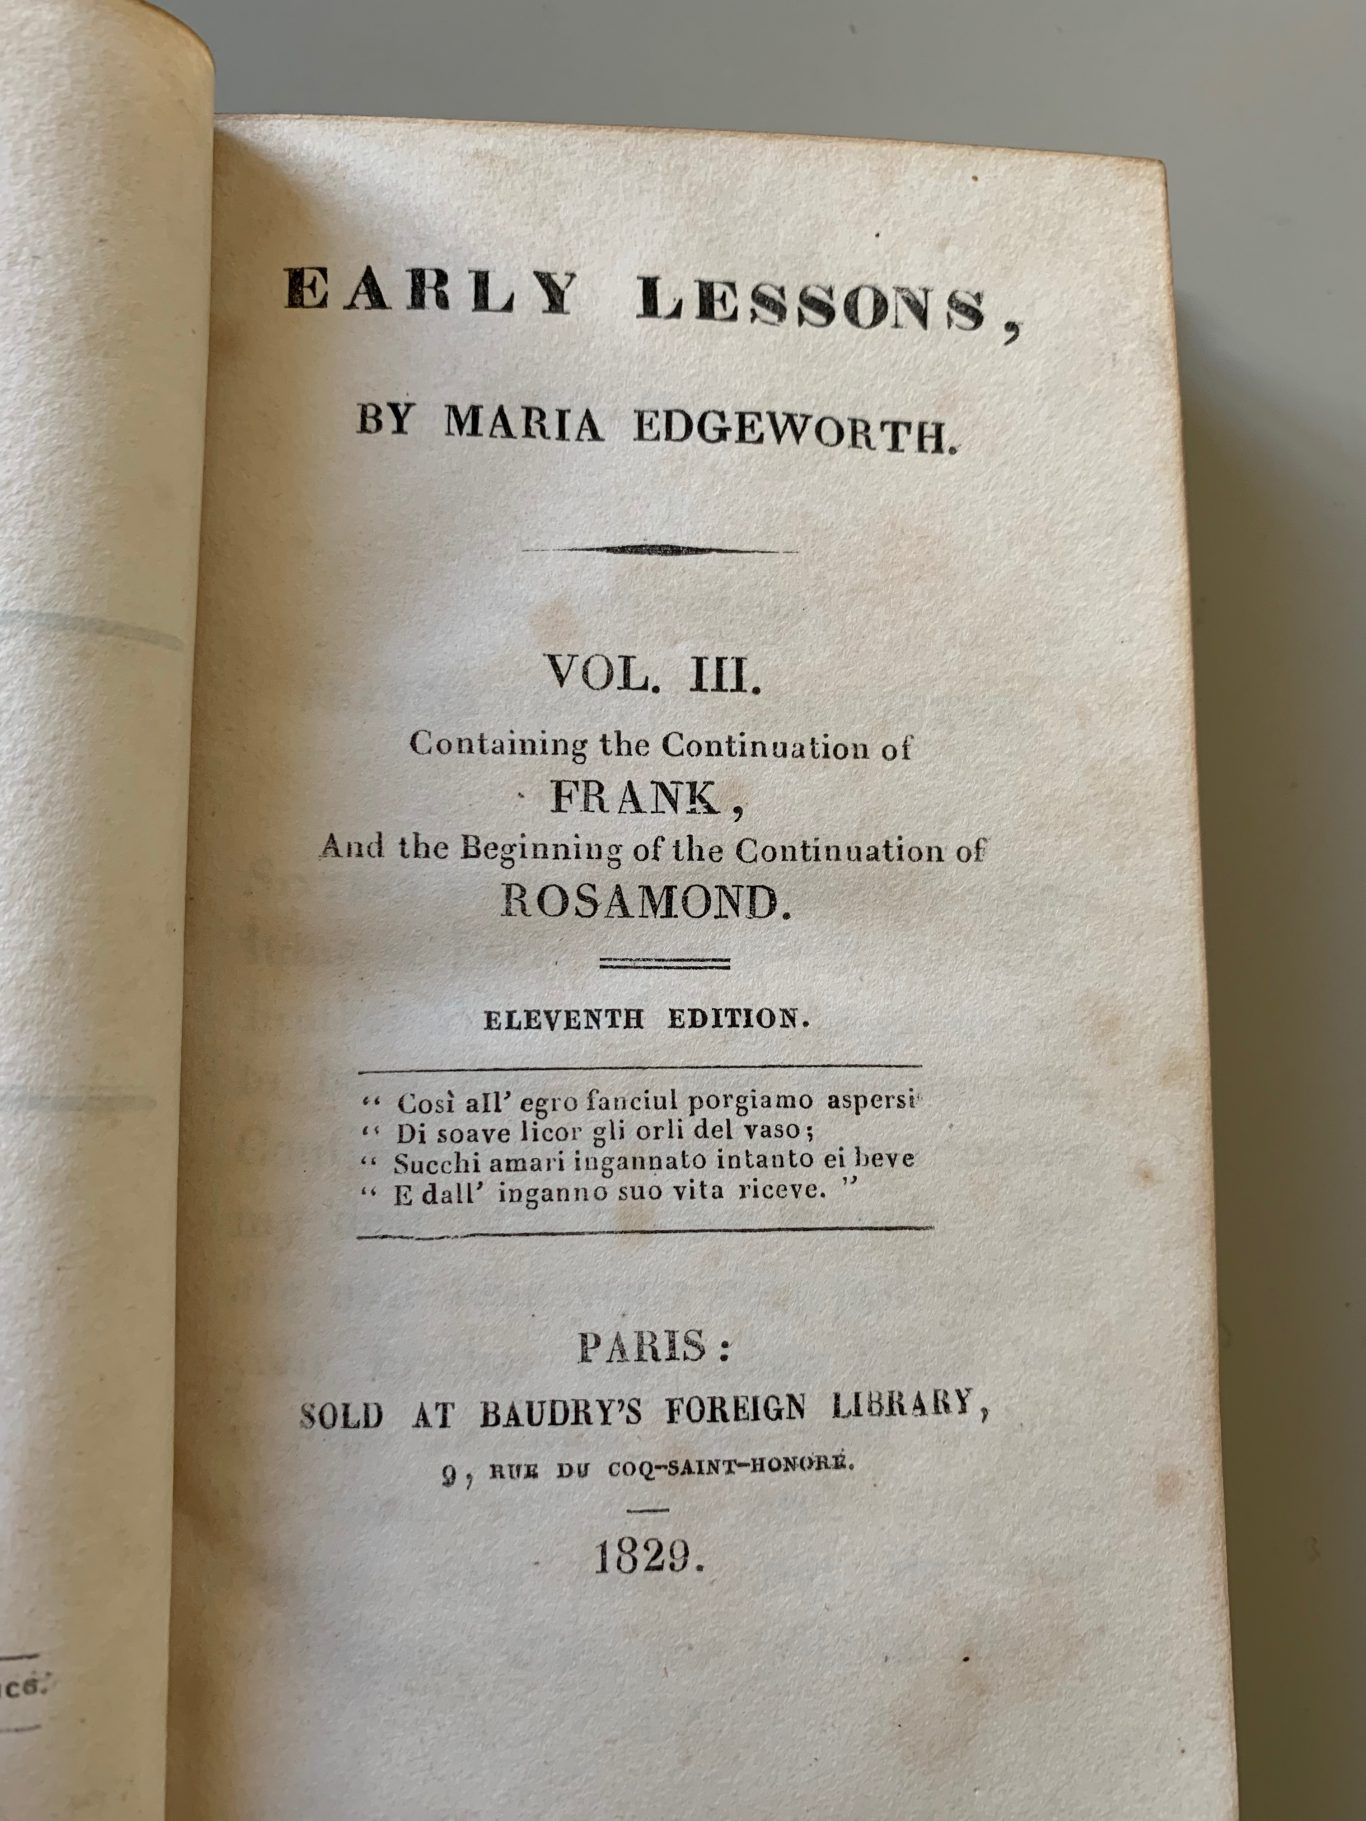 1829 - EARLY LESSONS